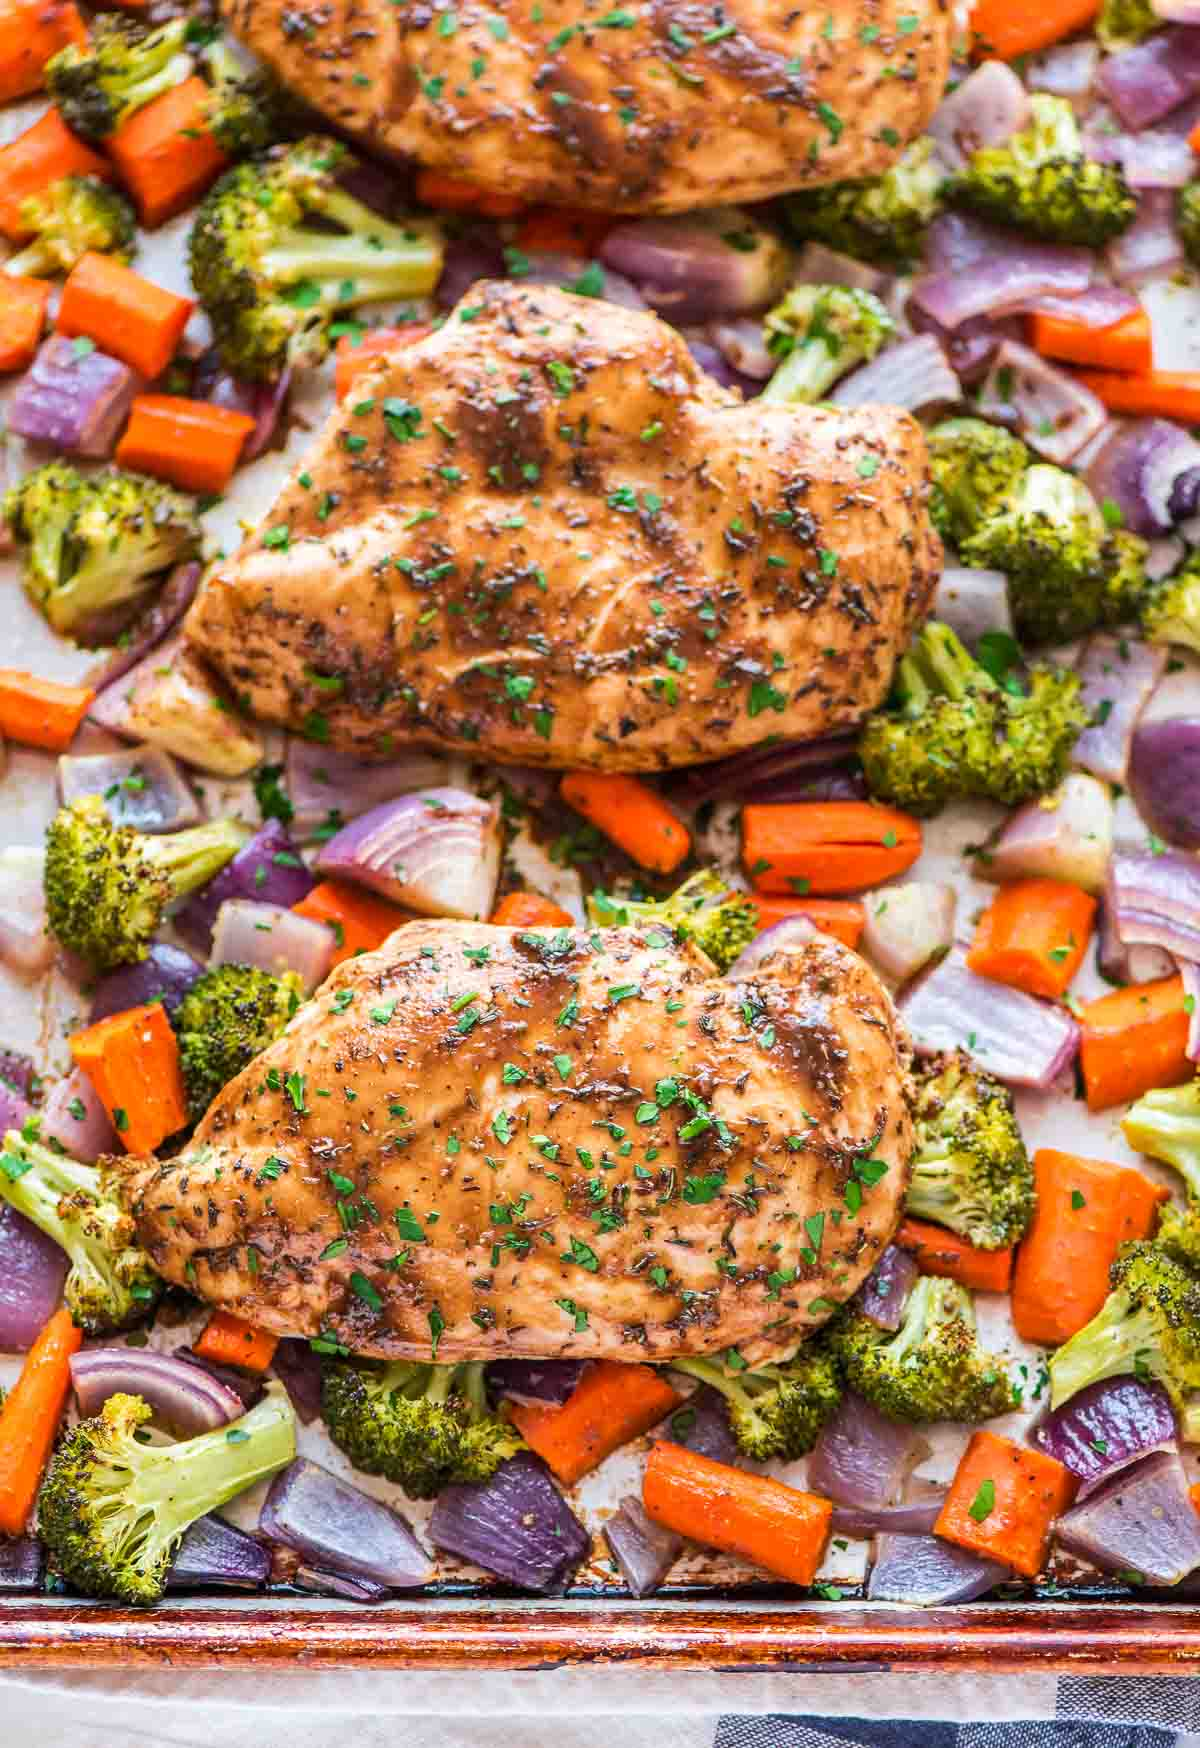 Gluten Free Sheet Pan Dinner Recipes Clean Eating Veggie